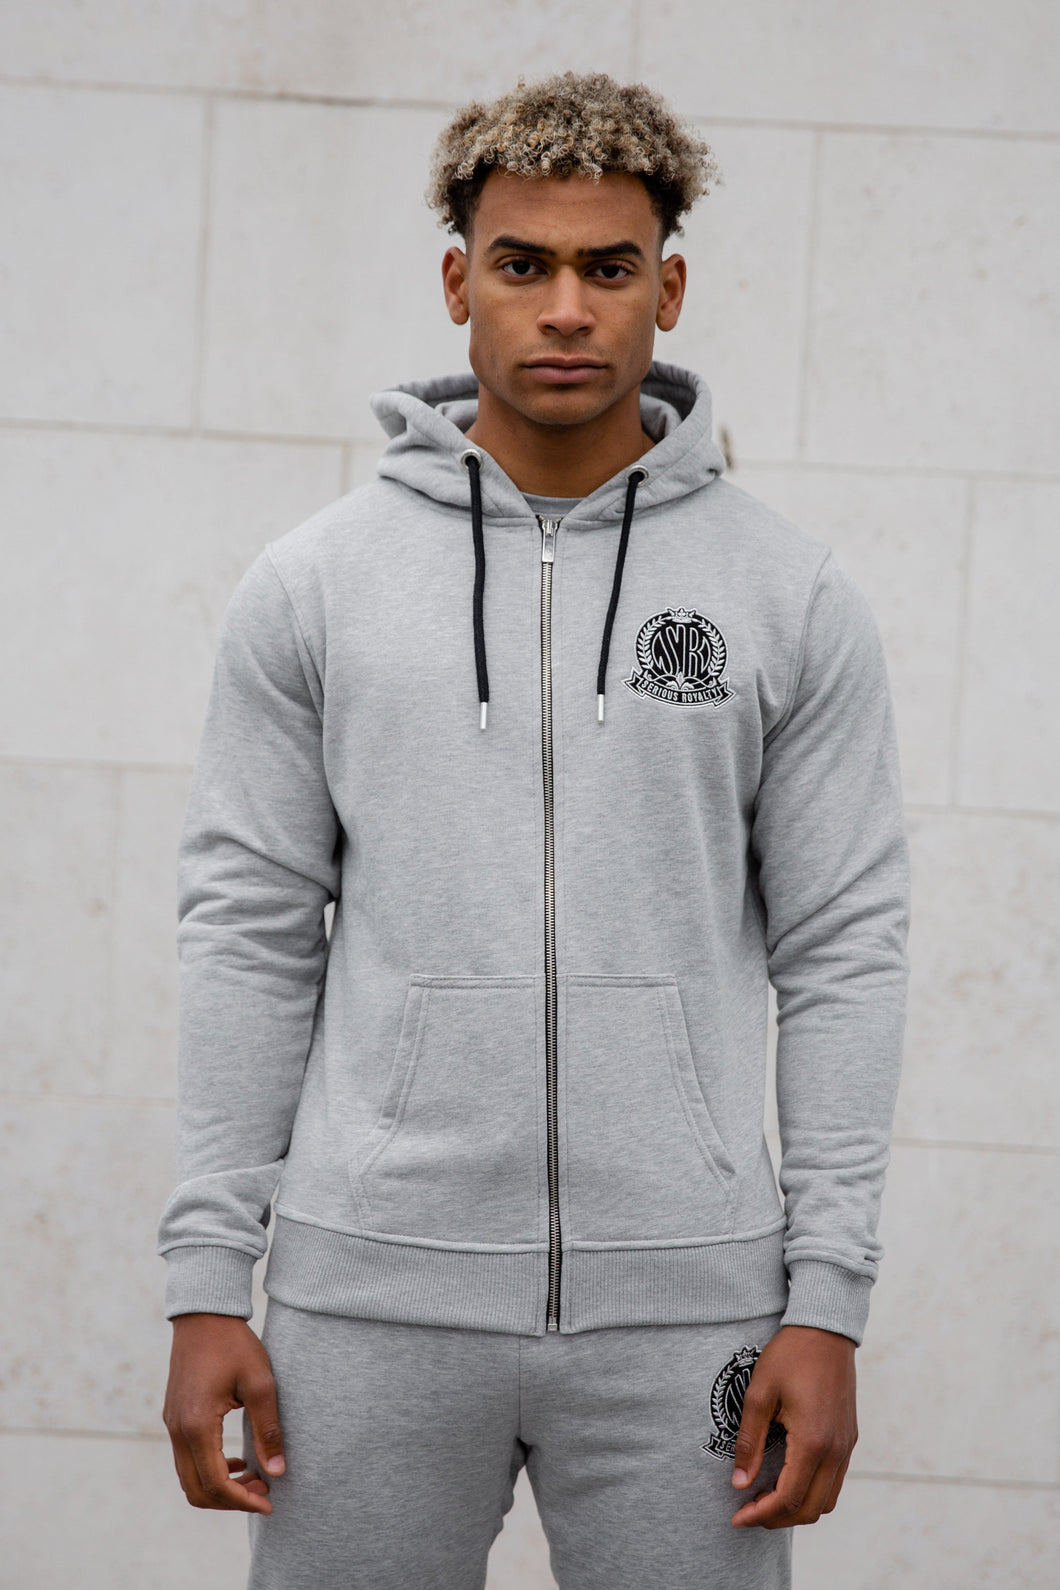 Grey Signature Zip Hoody Tracksuit Jacket - Serious Royalty